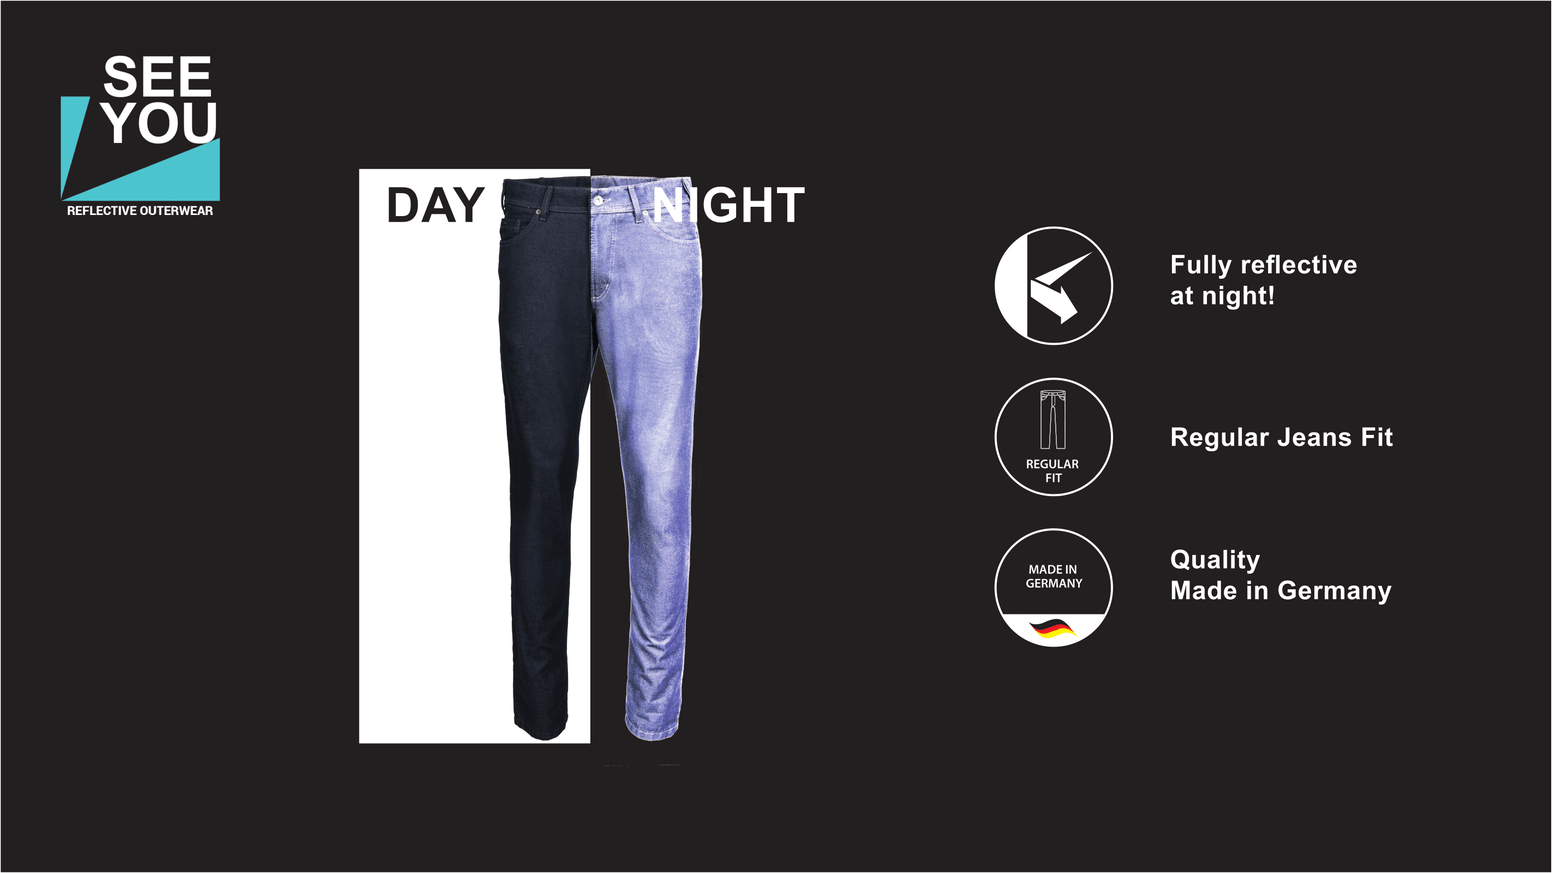 The German textile innovation that will save lives! 100% jeans style & fit with fully reflective capabilities. Be seen at night!